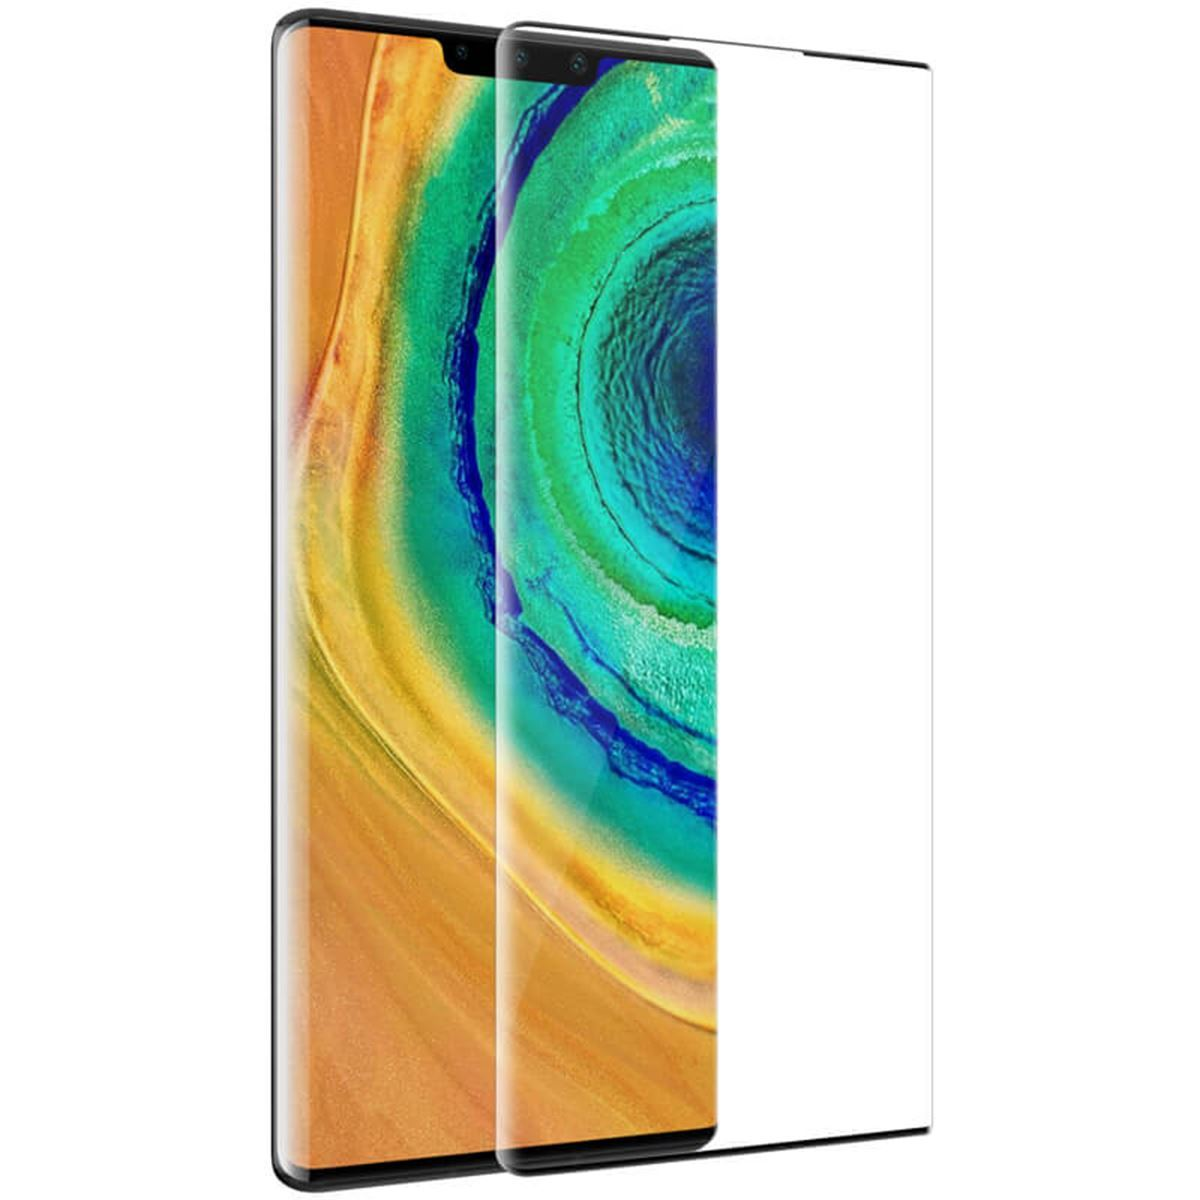 Huawei Mate 20 Lite Tempered Glass Screen Protector - Clear